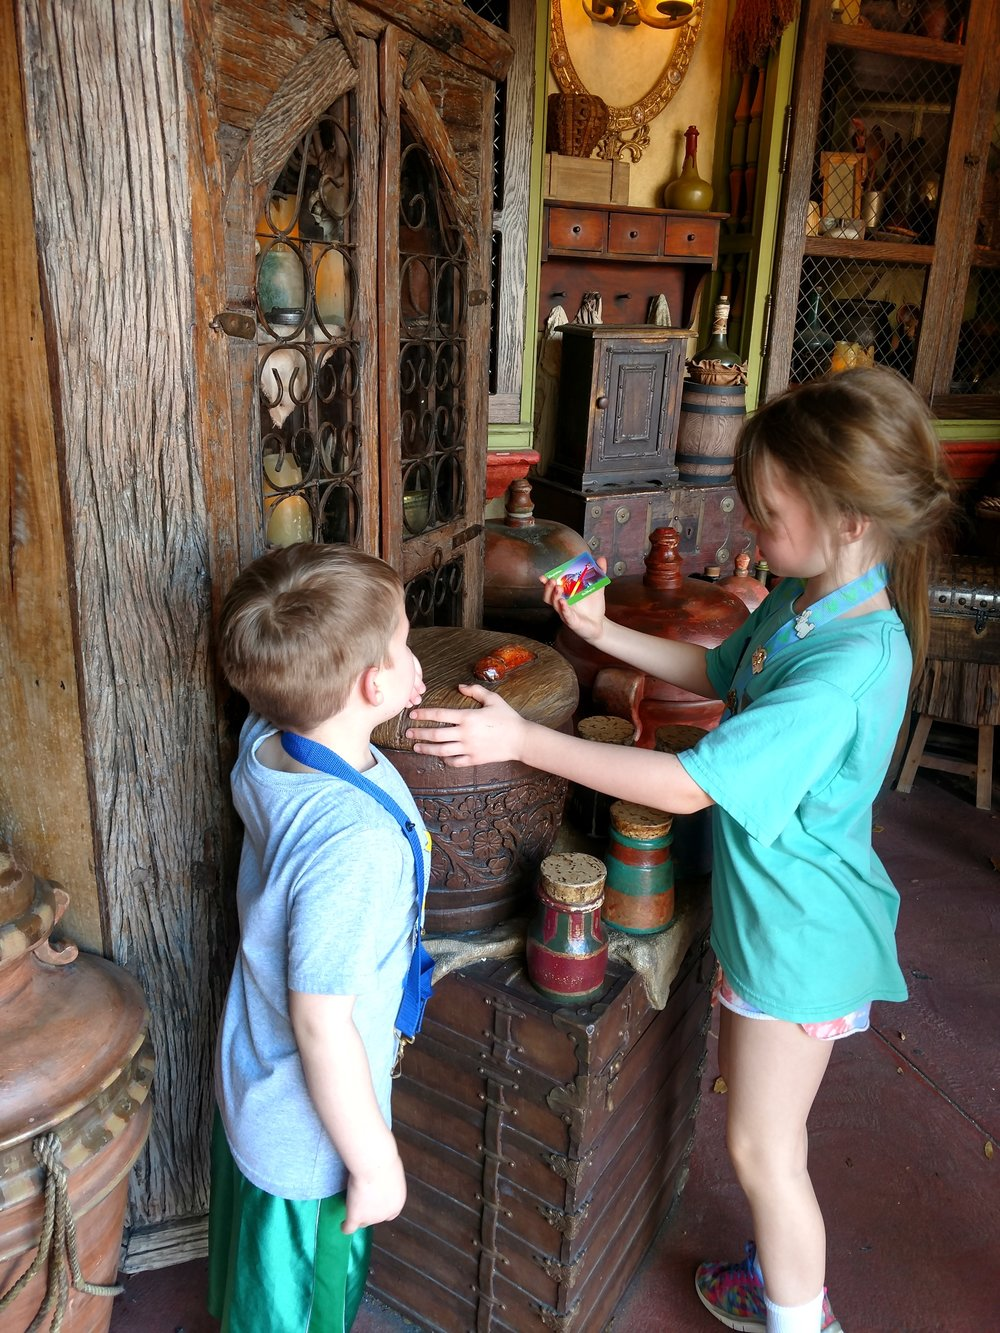 Both my son and daughter loved following the pirate maps to collect the clues and find the treasure.